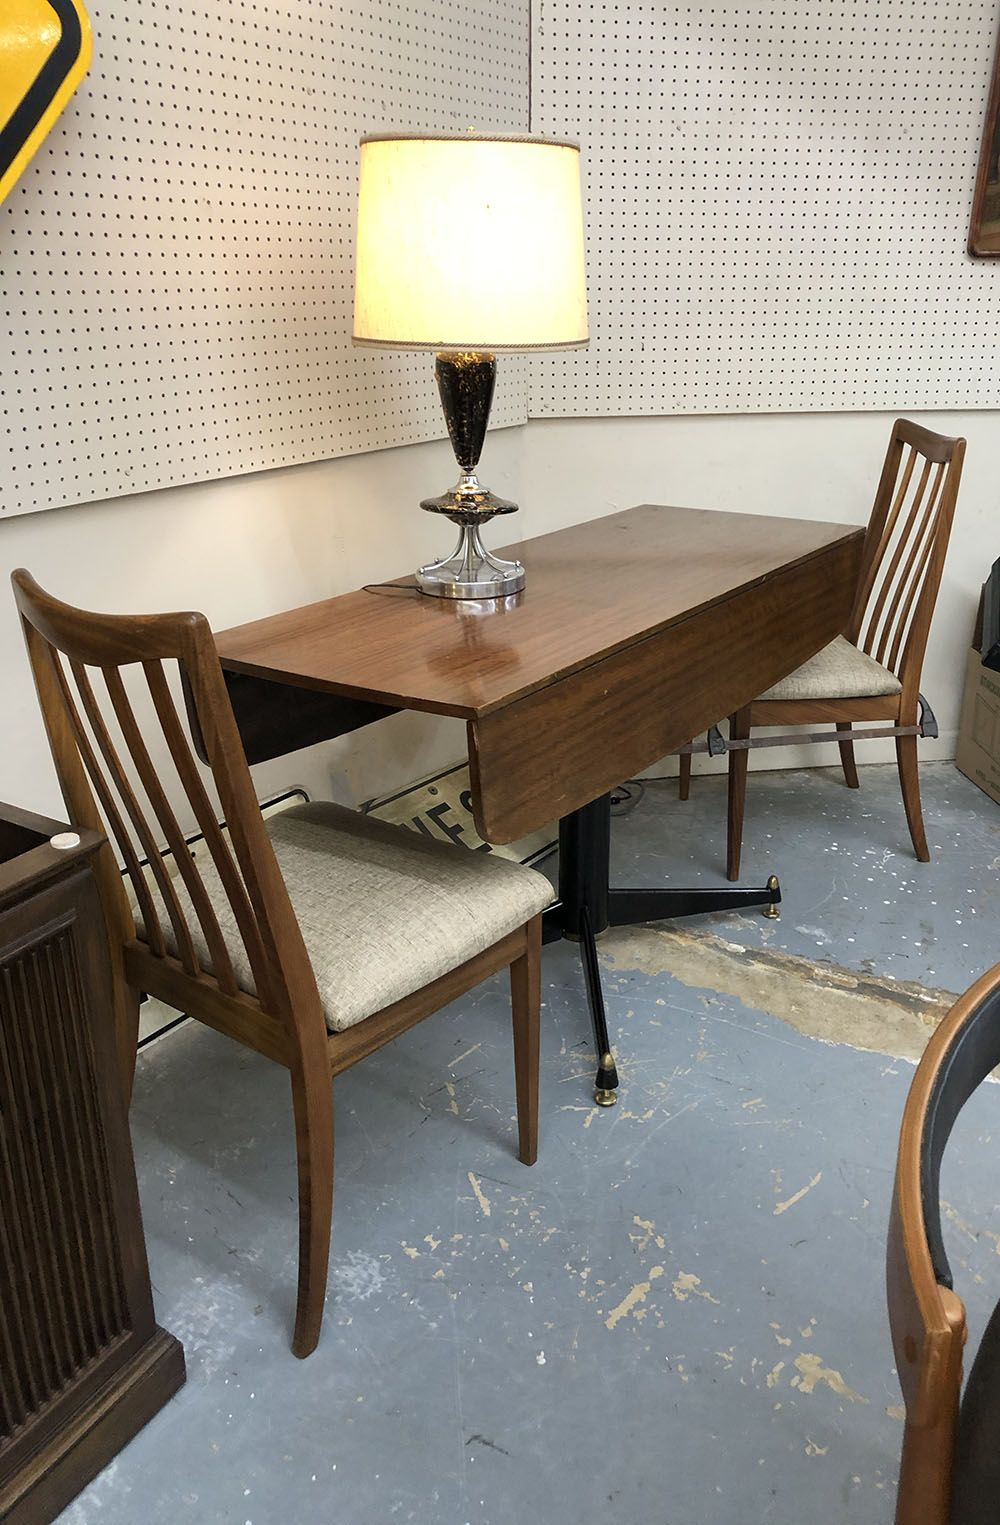 G Plan Table With Extension Leaves On Sale Was 365 Sale Price 295 Mid Century Dallas Office Furniture Modern Mid Century Bar Stools Mid Century Furniture